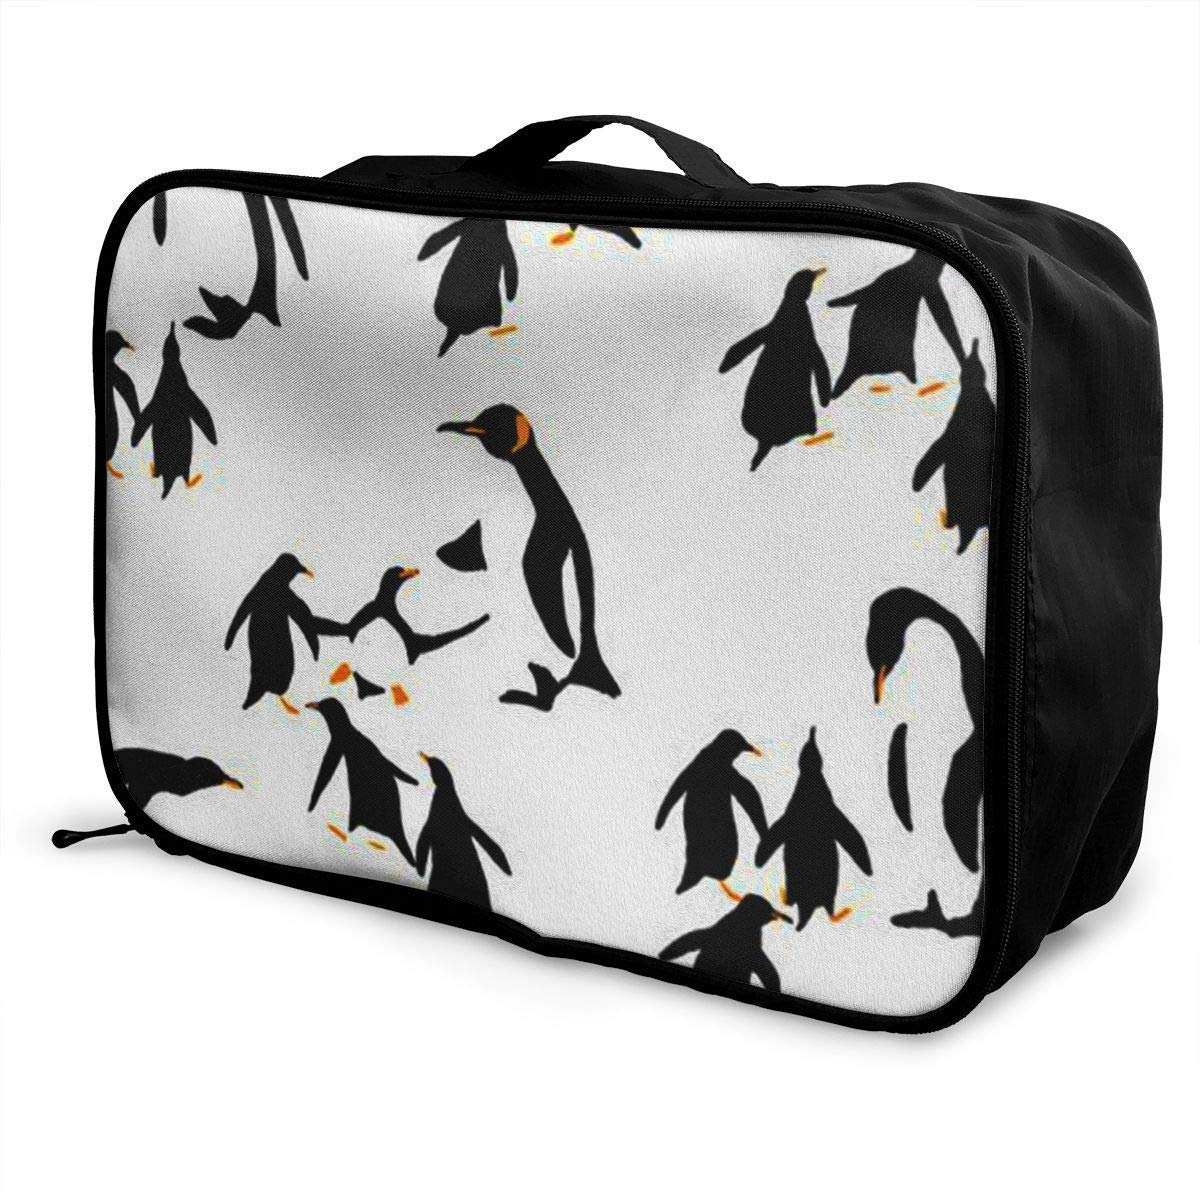 Portable Luggage Duffel Bag Penguin Pattern Travel Bags Carry-on in Trolley Handle JTRVW Luggage Bags for Travel